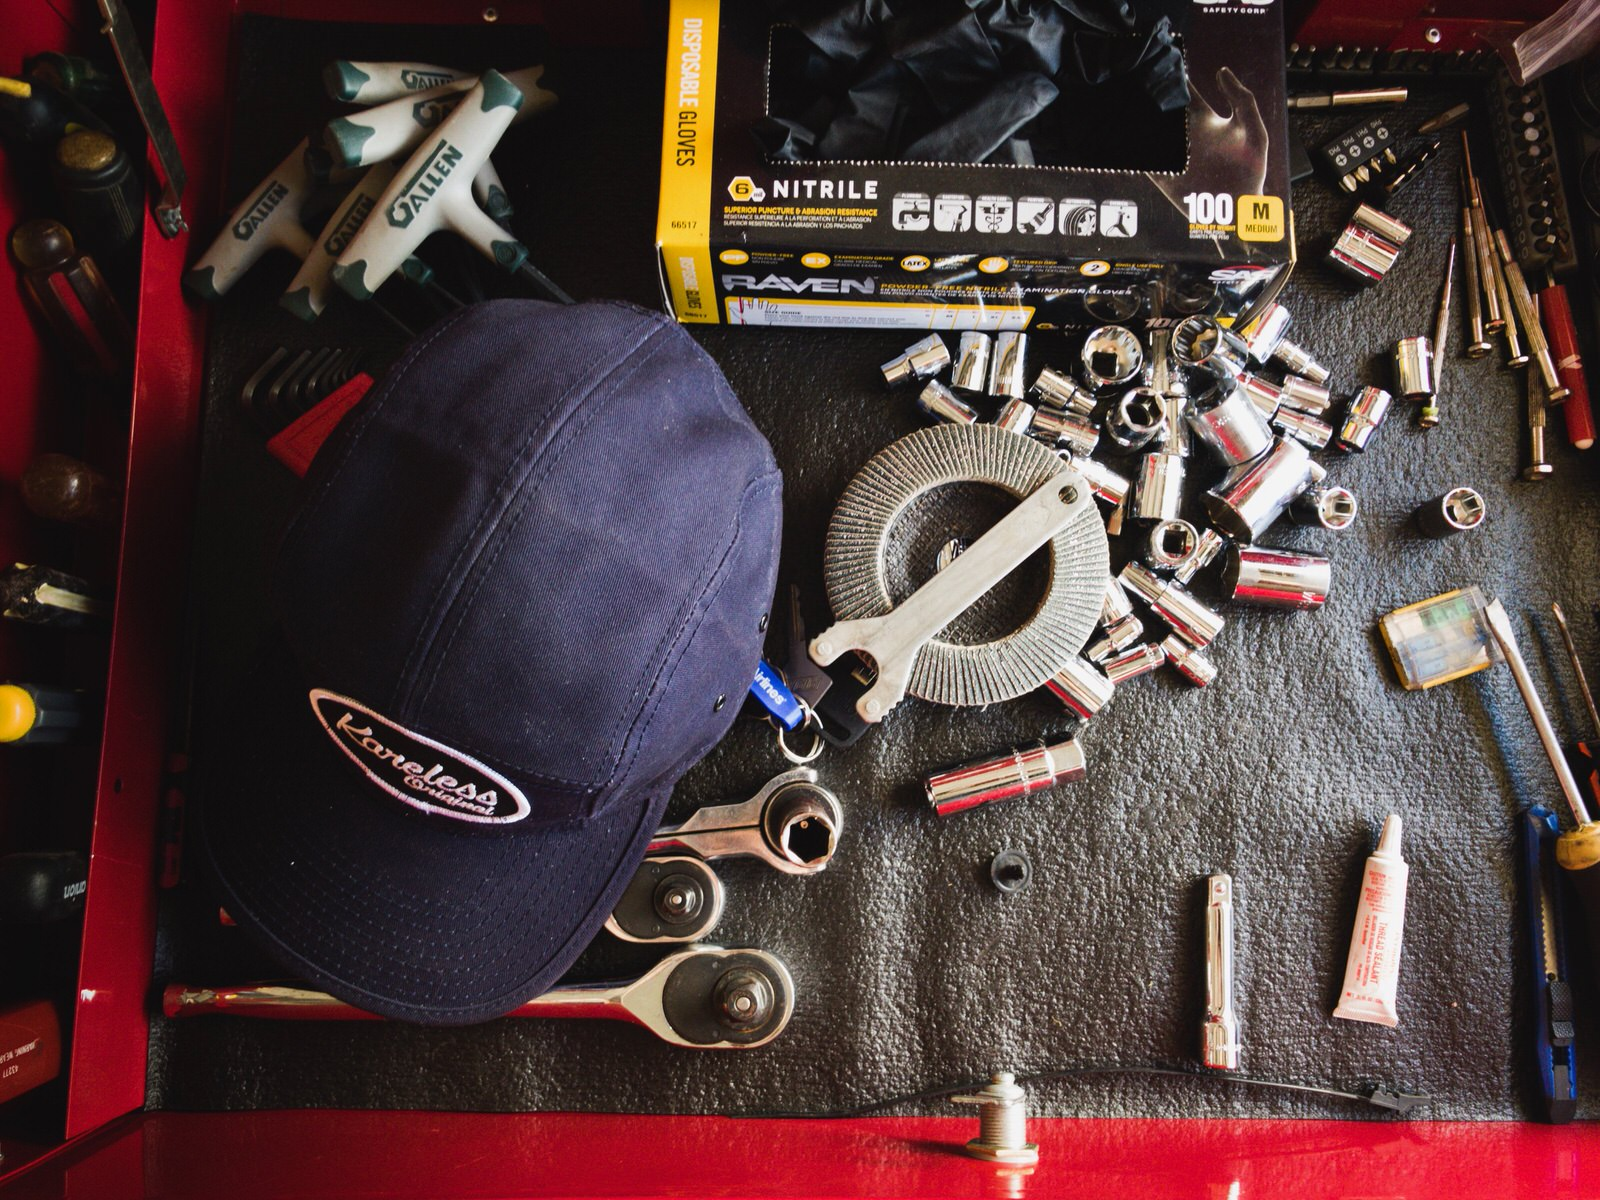 Karless hat on tools